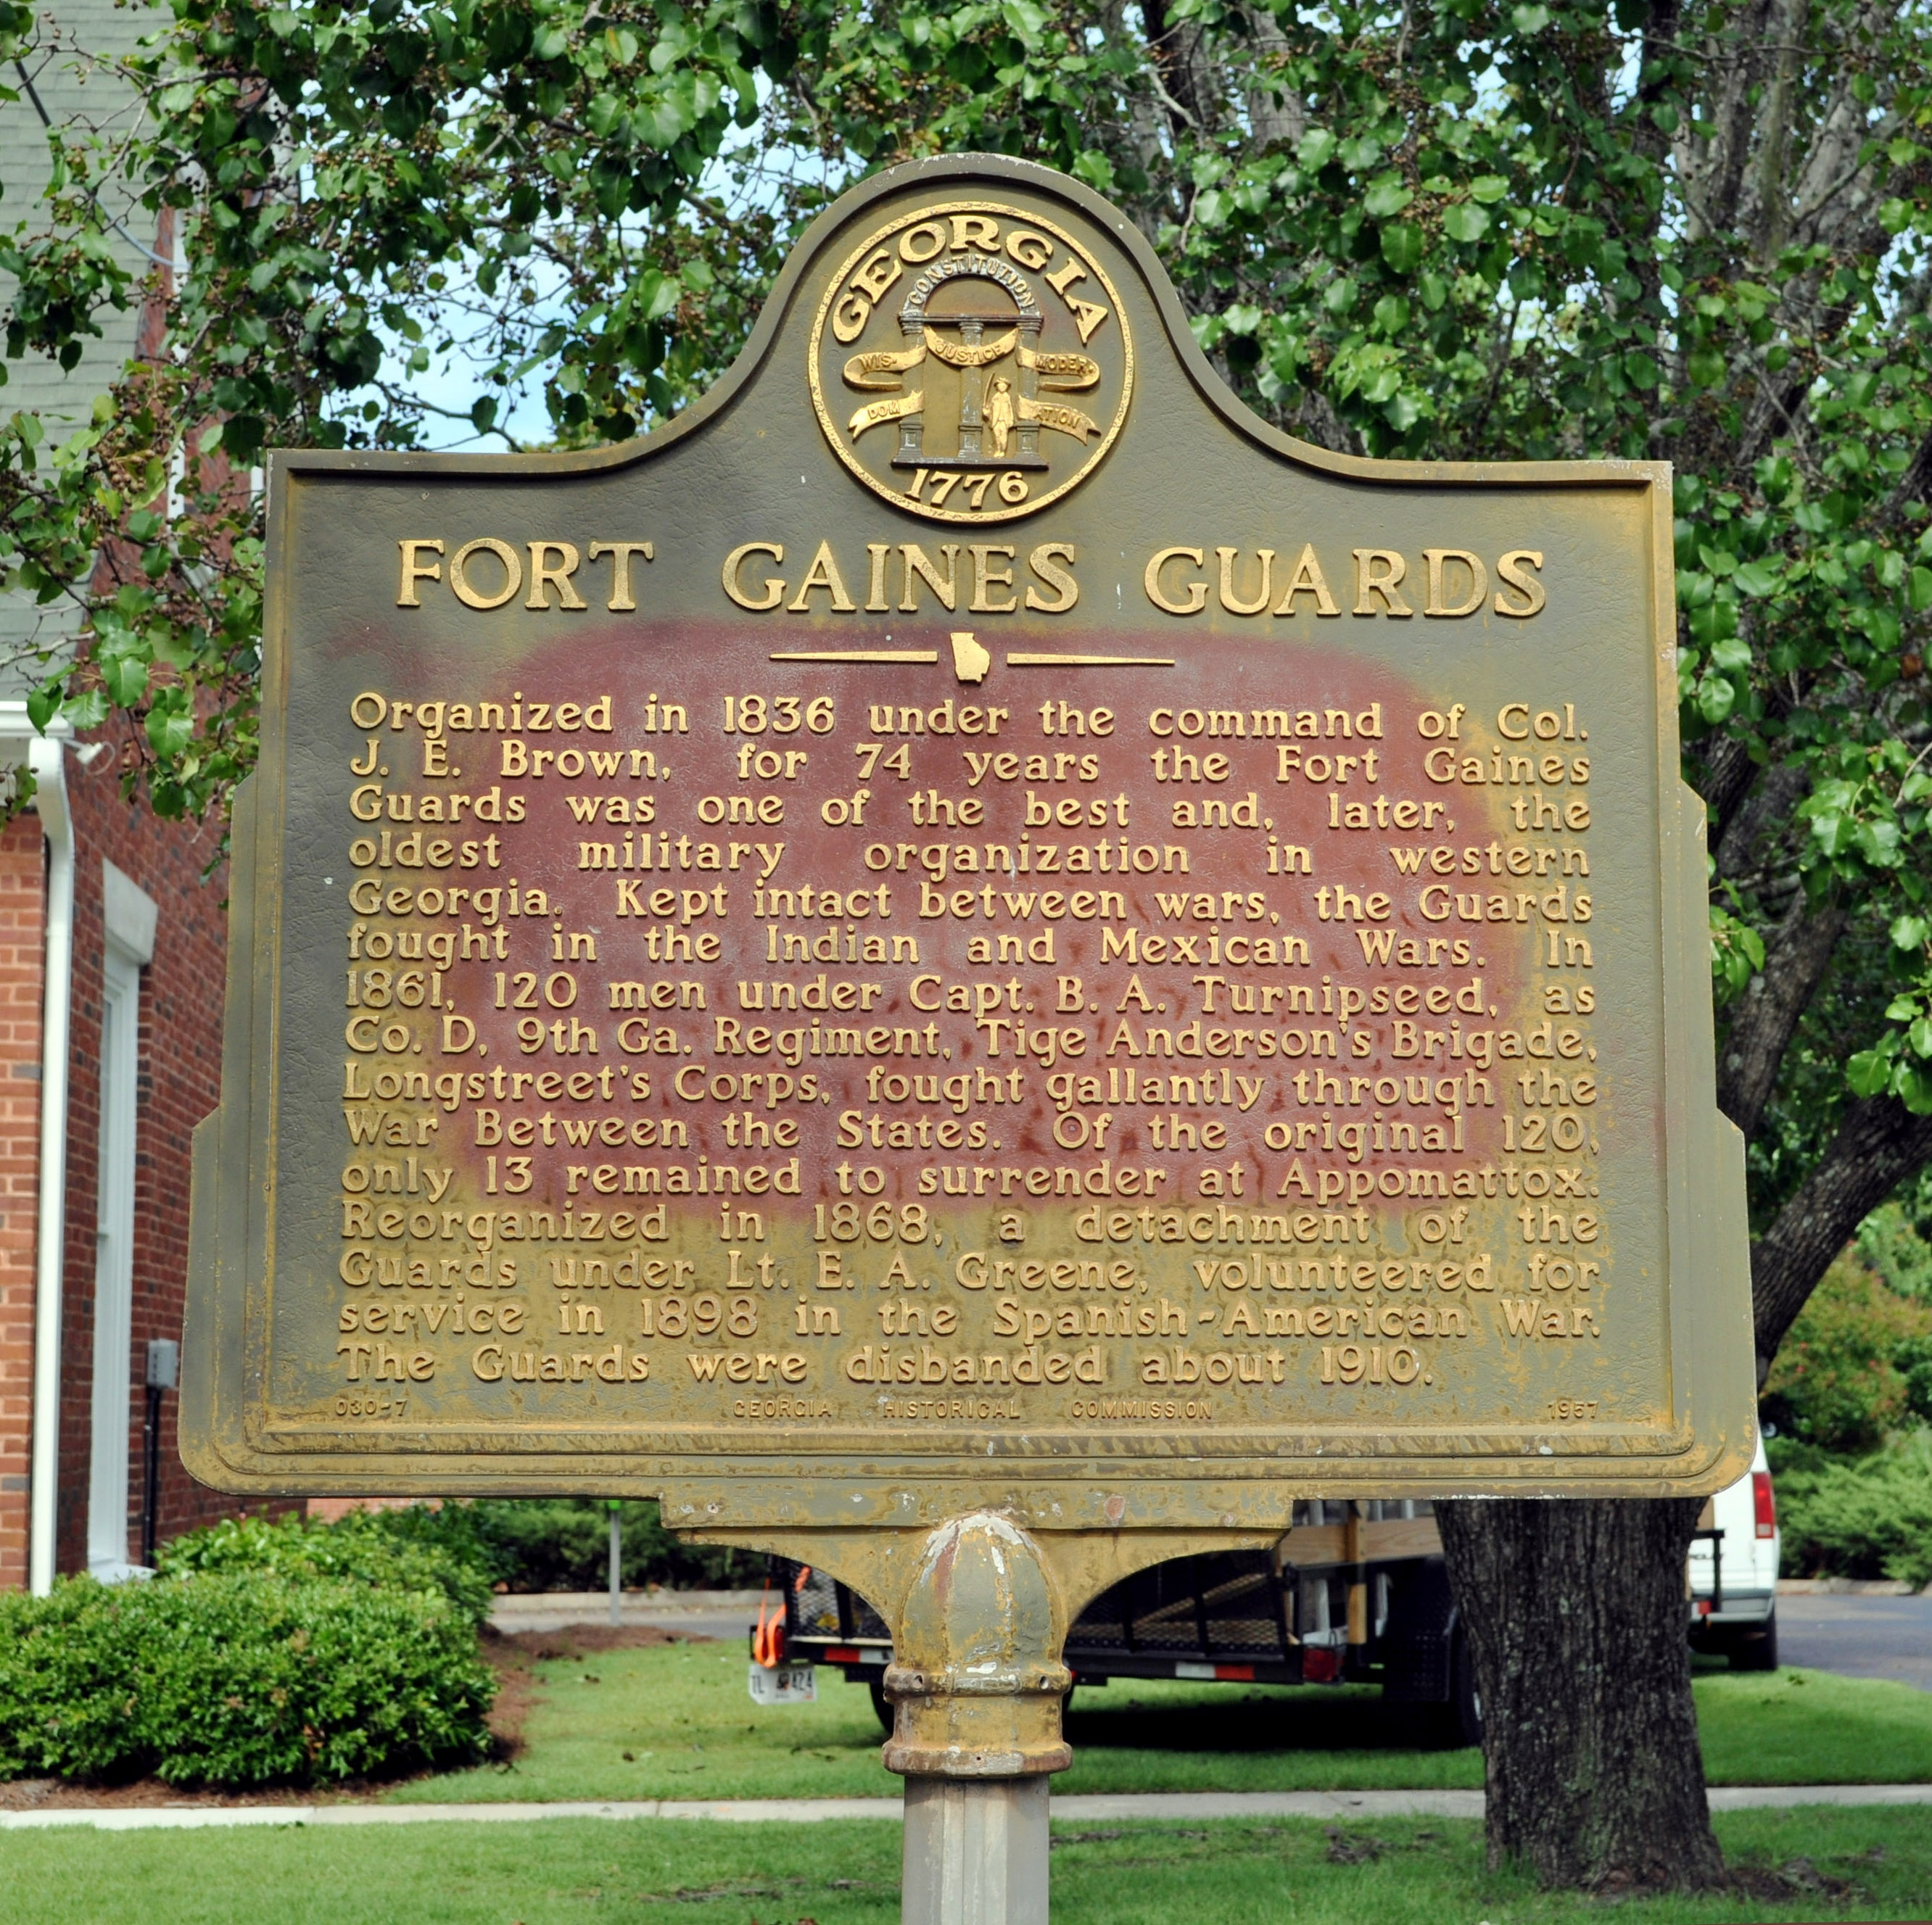 Fort Gaines Guards Marker